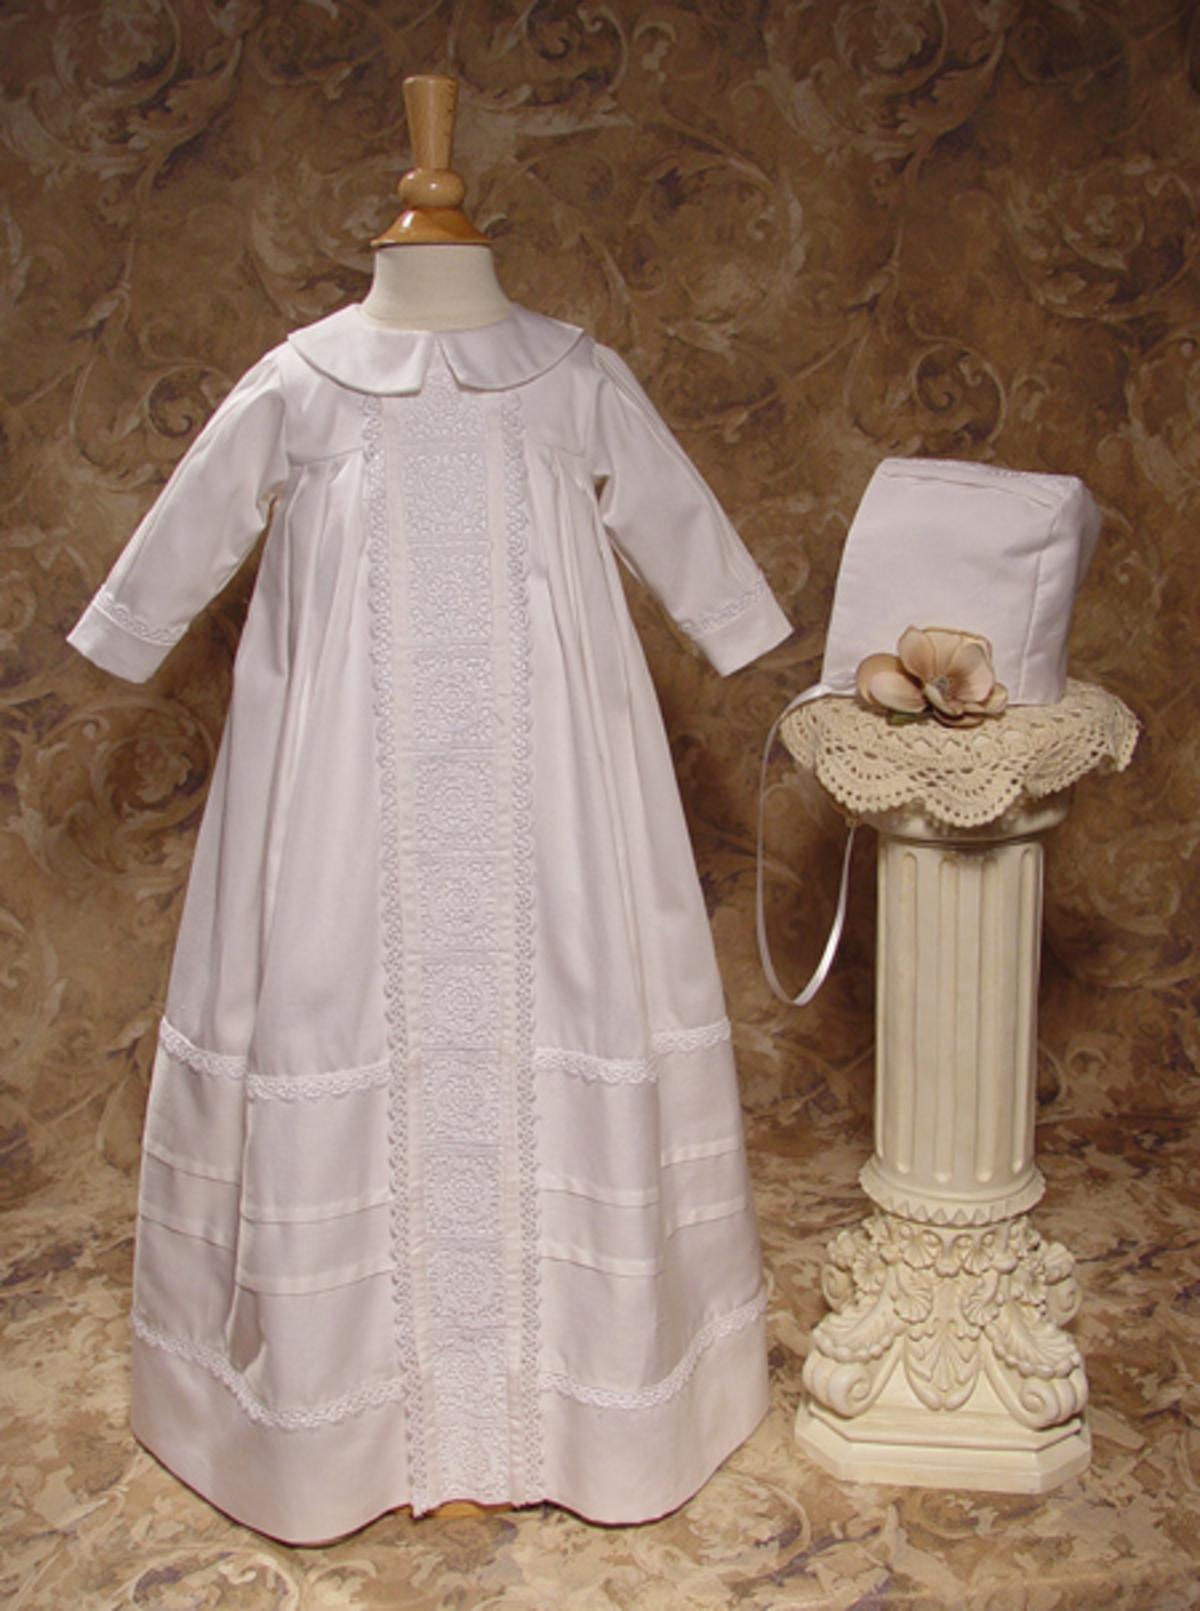 Christening Gowns/Outfits for Boys